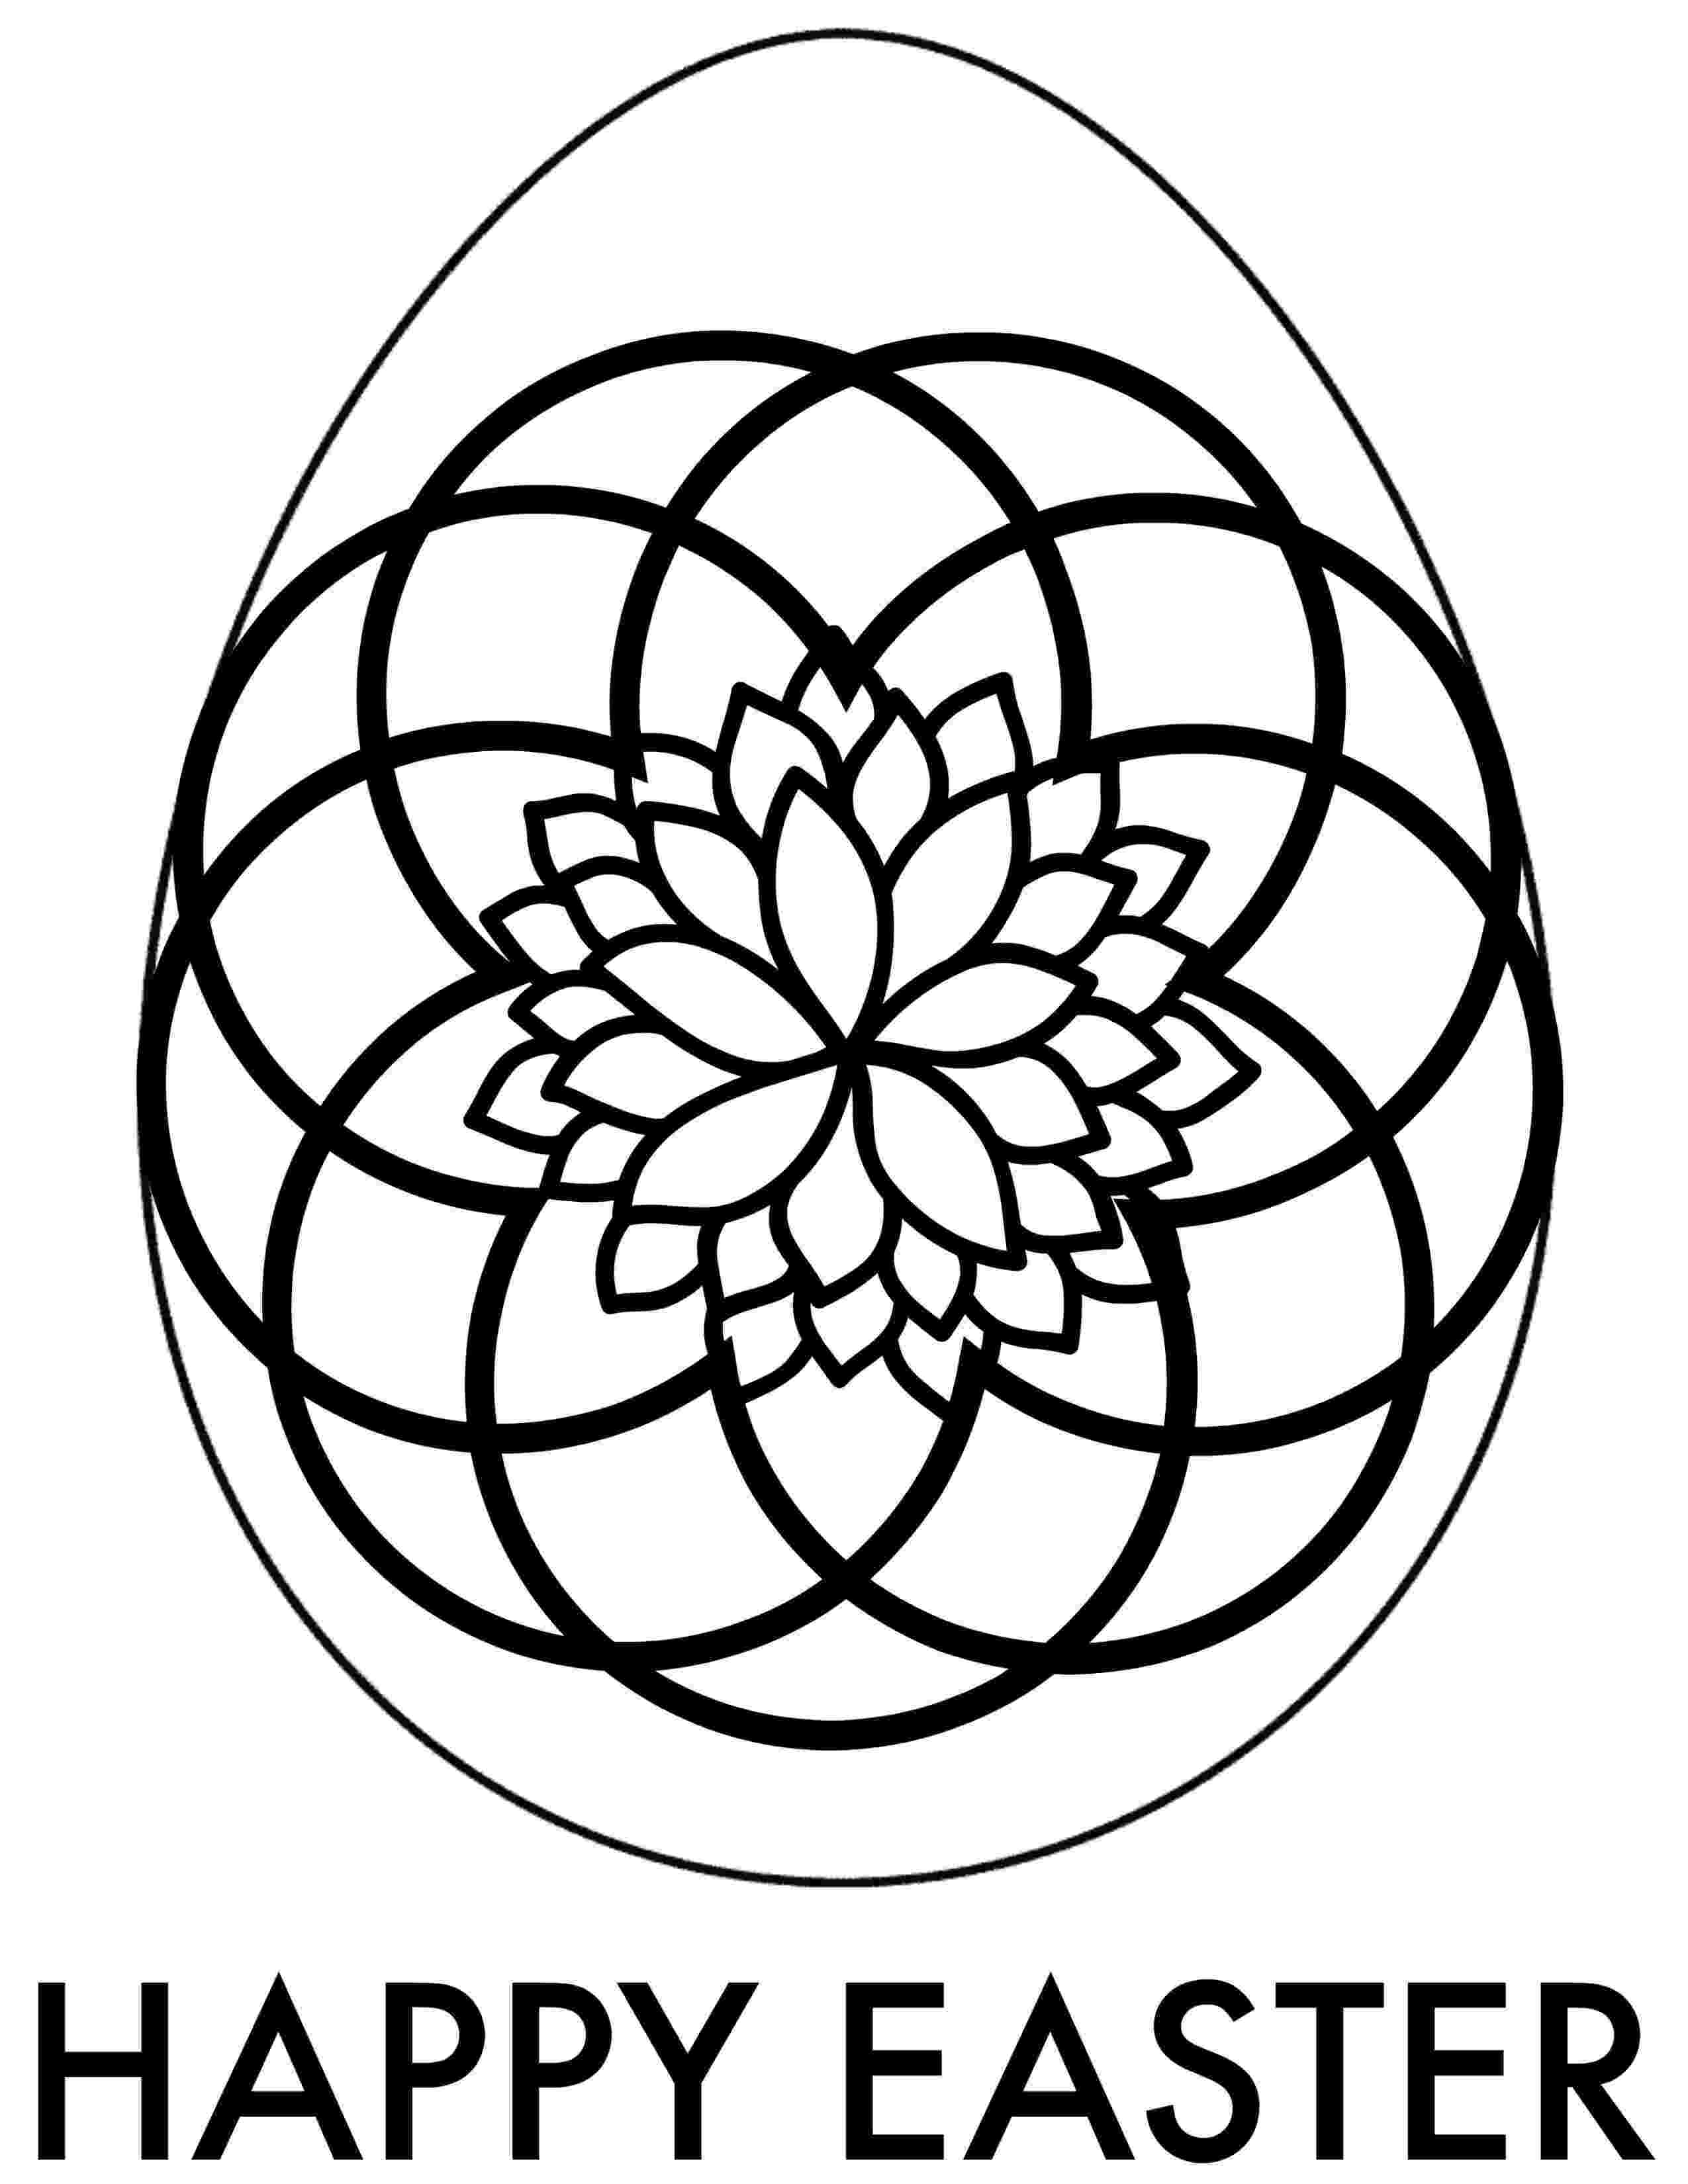 egg coloring pages easter adult coloring pages free printable downloads egg coloring pages